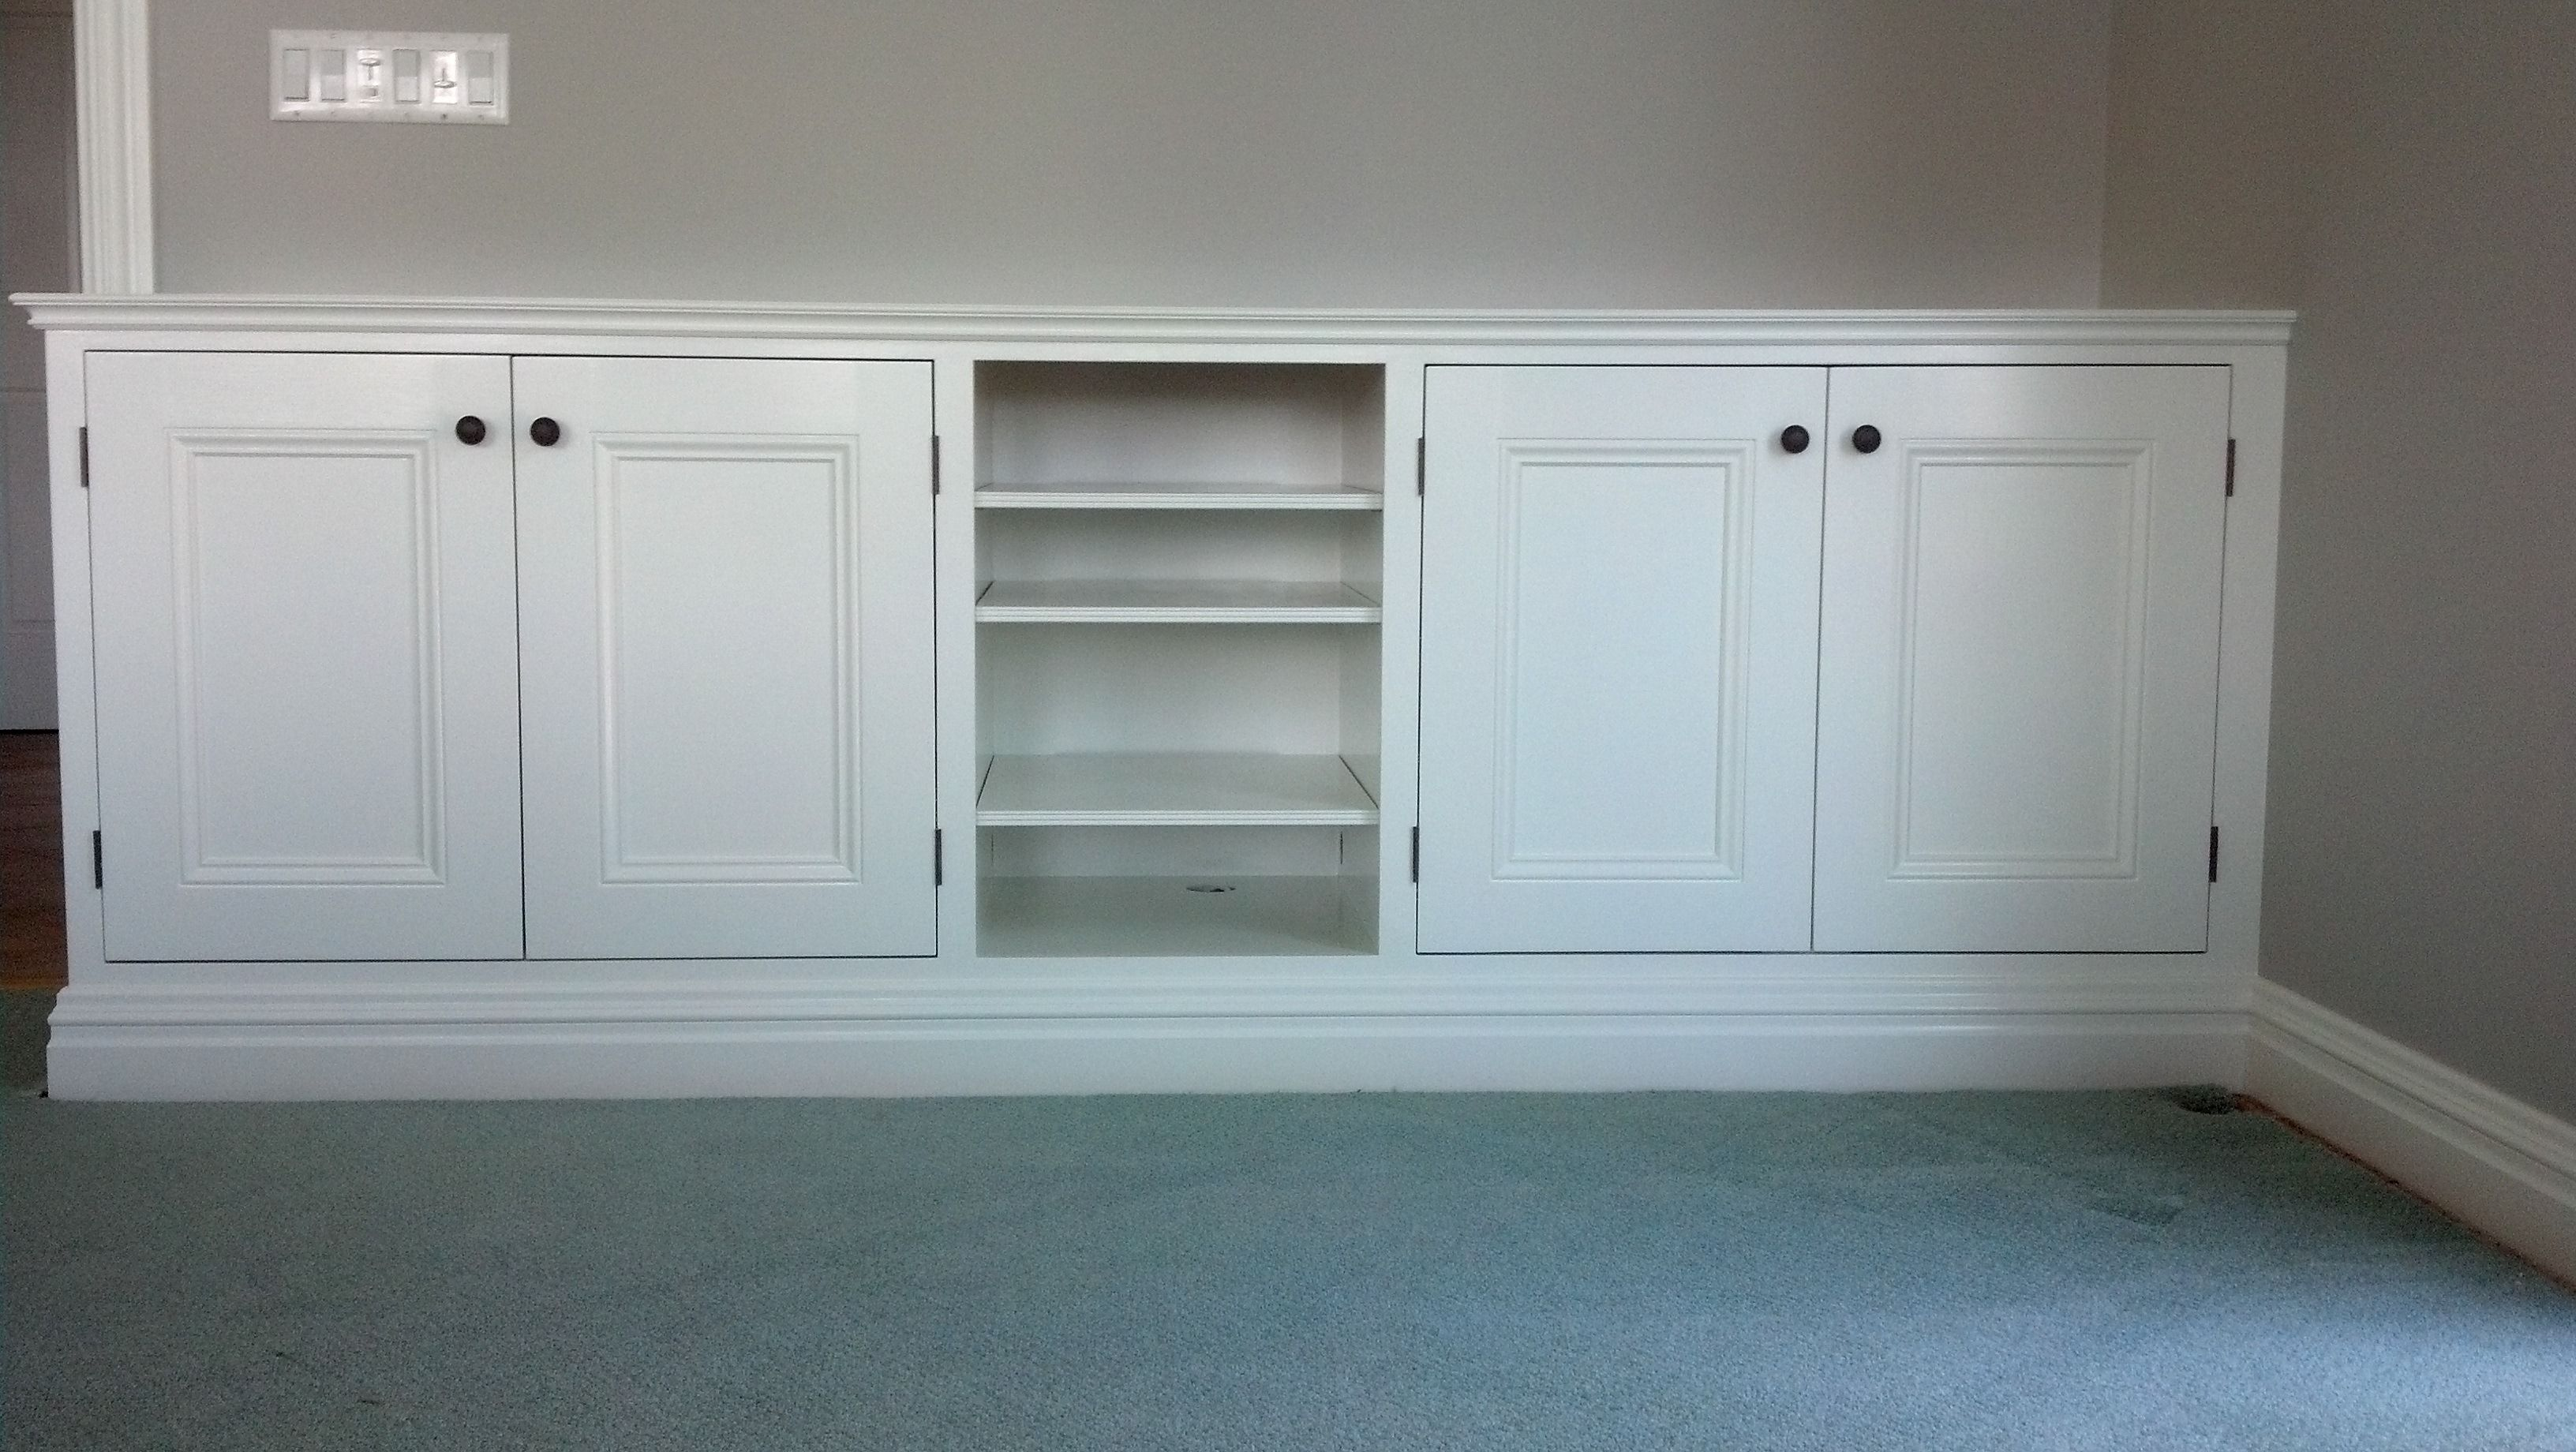 Freshly Painted Entertainment Center Perfection Plus Painting Bergen County Nj County House Built In Cabinets Painting Cabinets